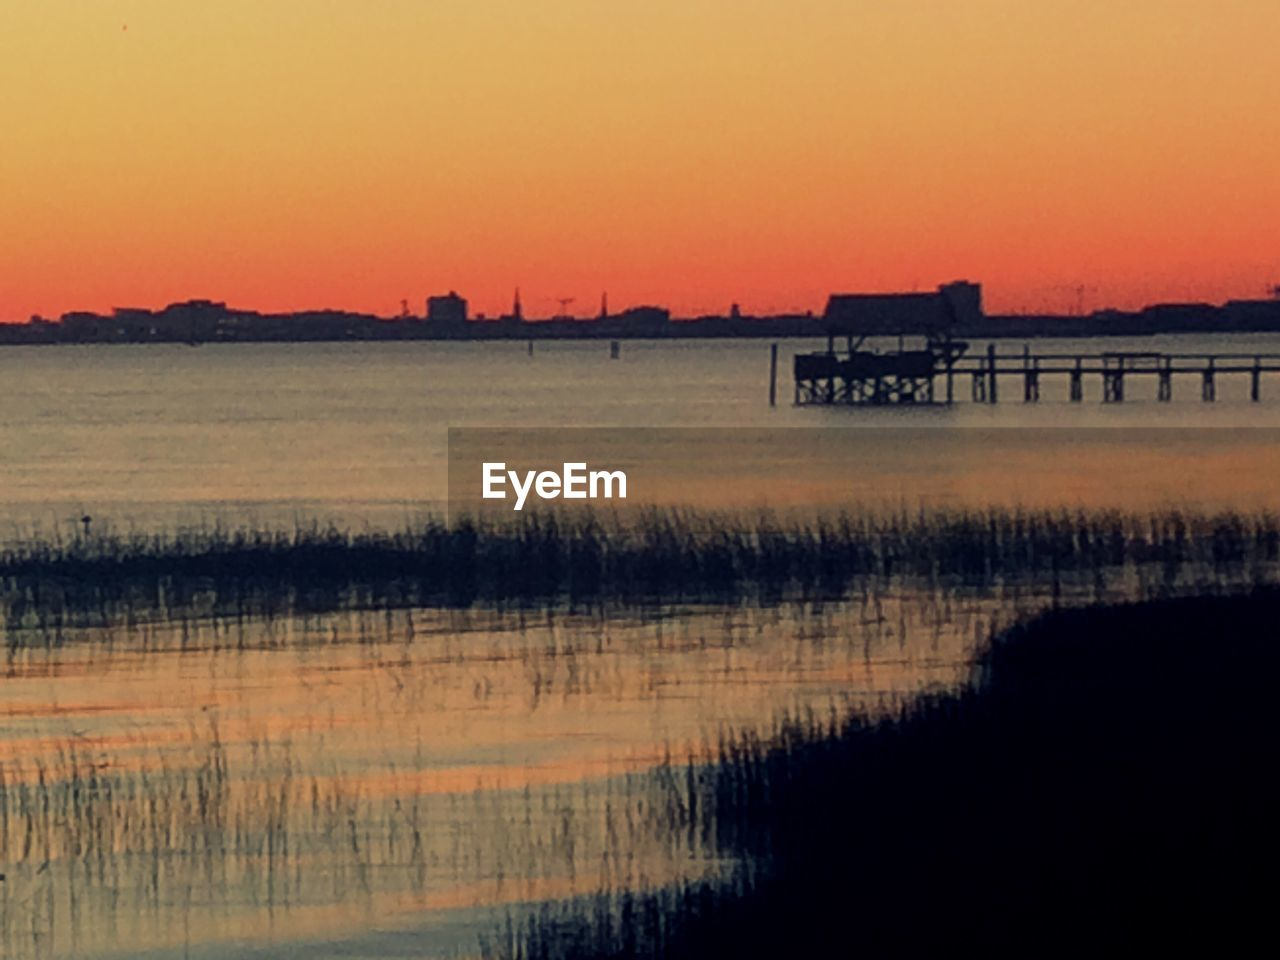 sunset, silhouette, reflection, water, beauty in nature, nature, scenics, orange color, sky, built structure, tranquil scene, tranquility, lake, waterfront, outdoors, architecture, no people, building exterior, day